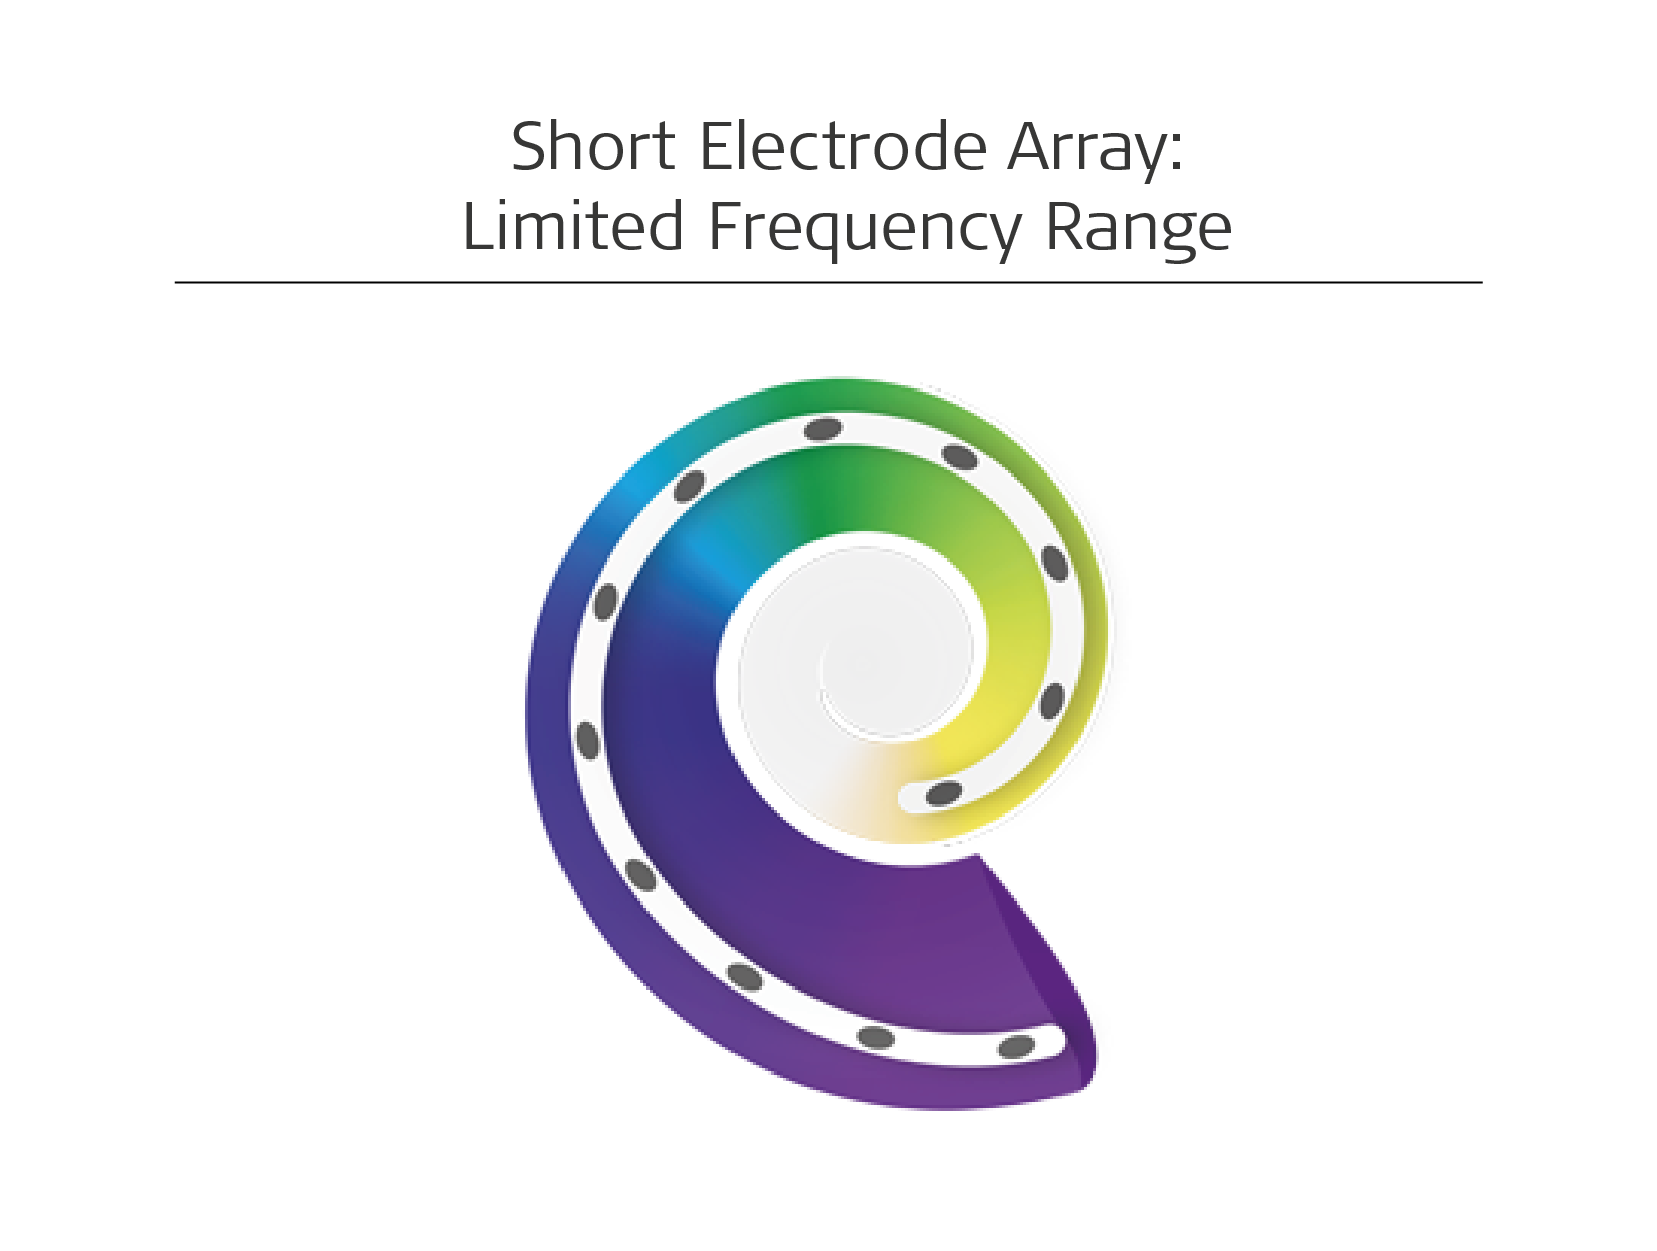 Short electrode array limited frequency range